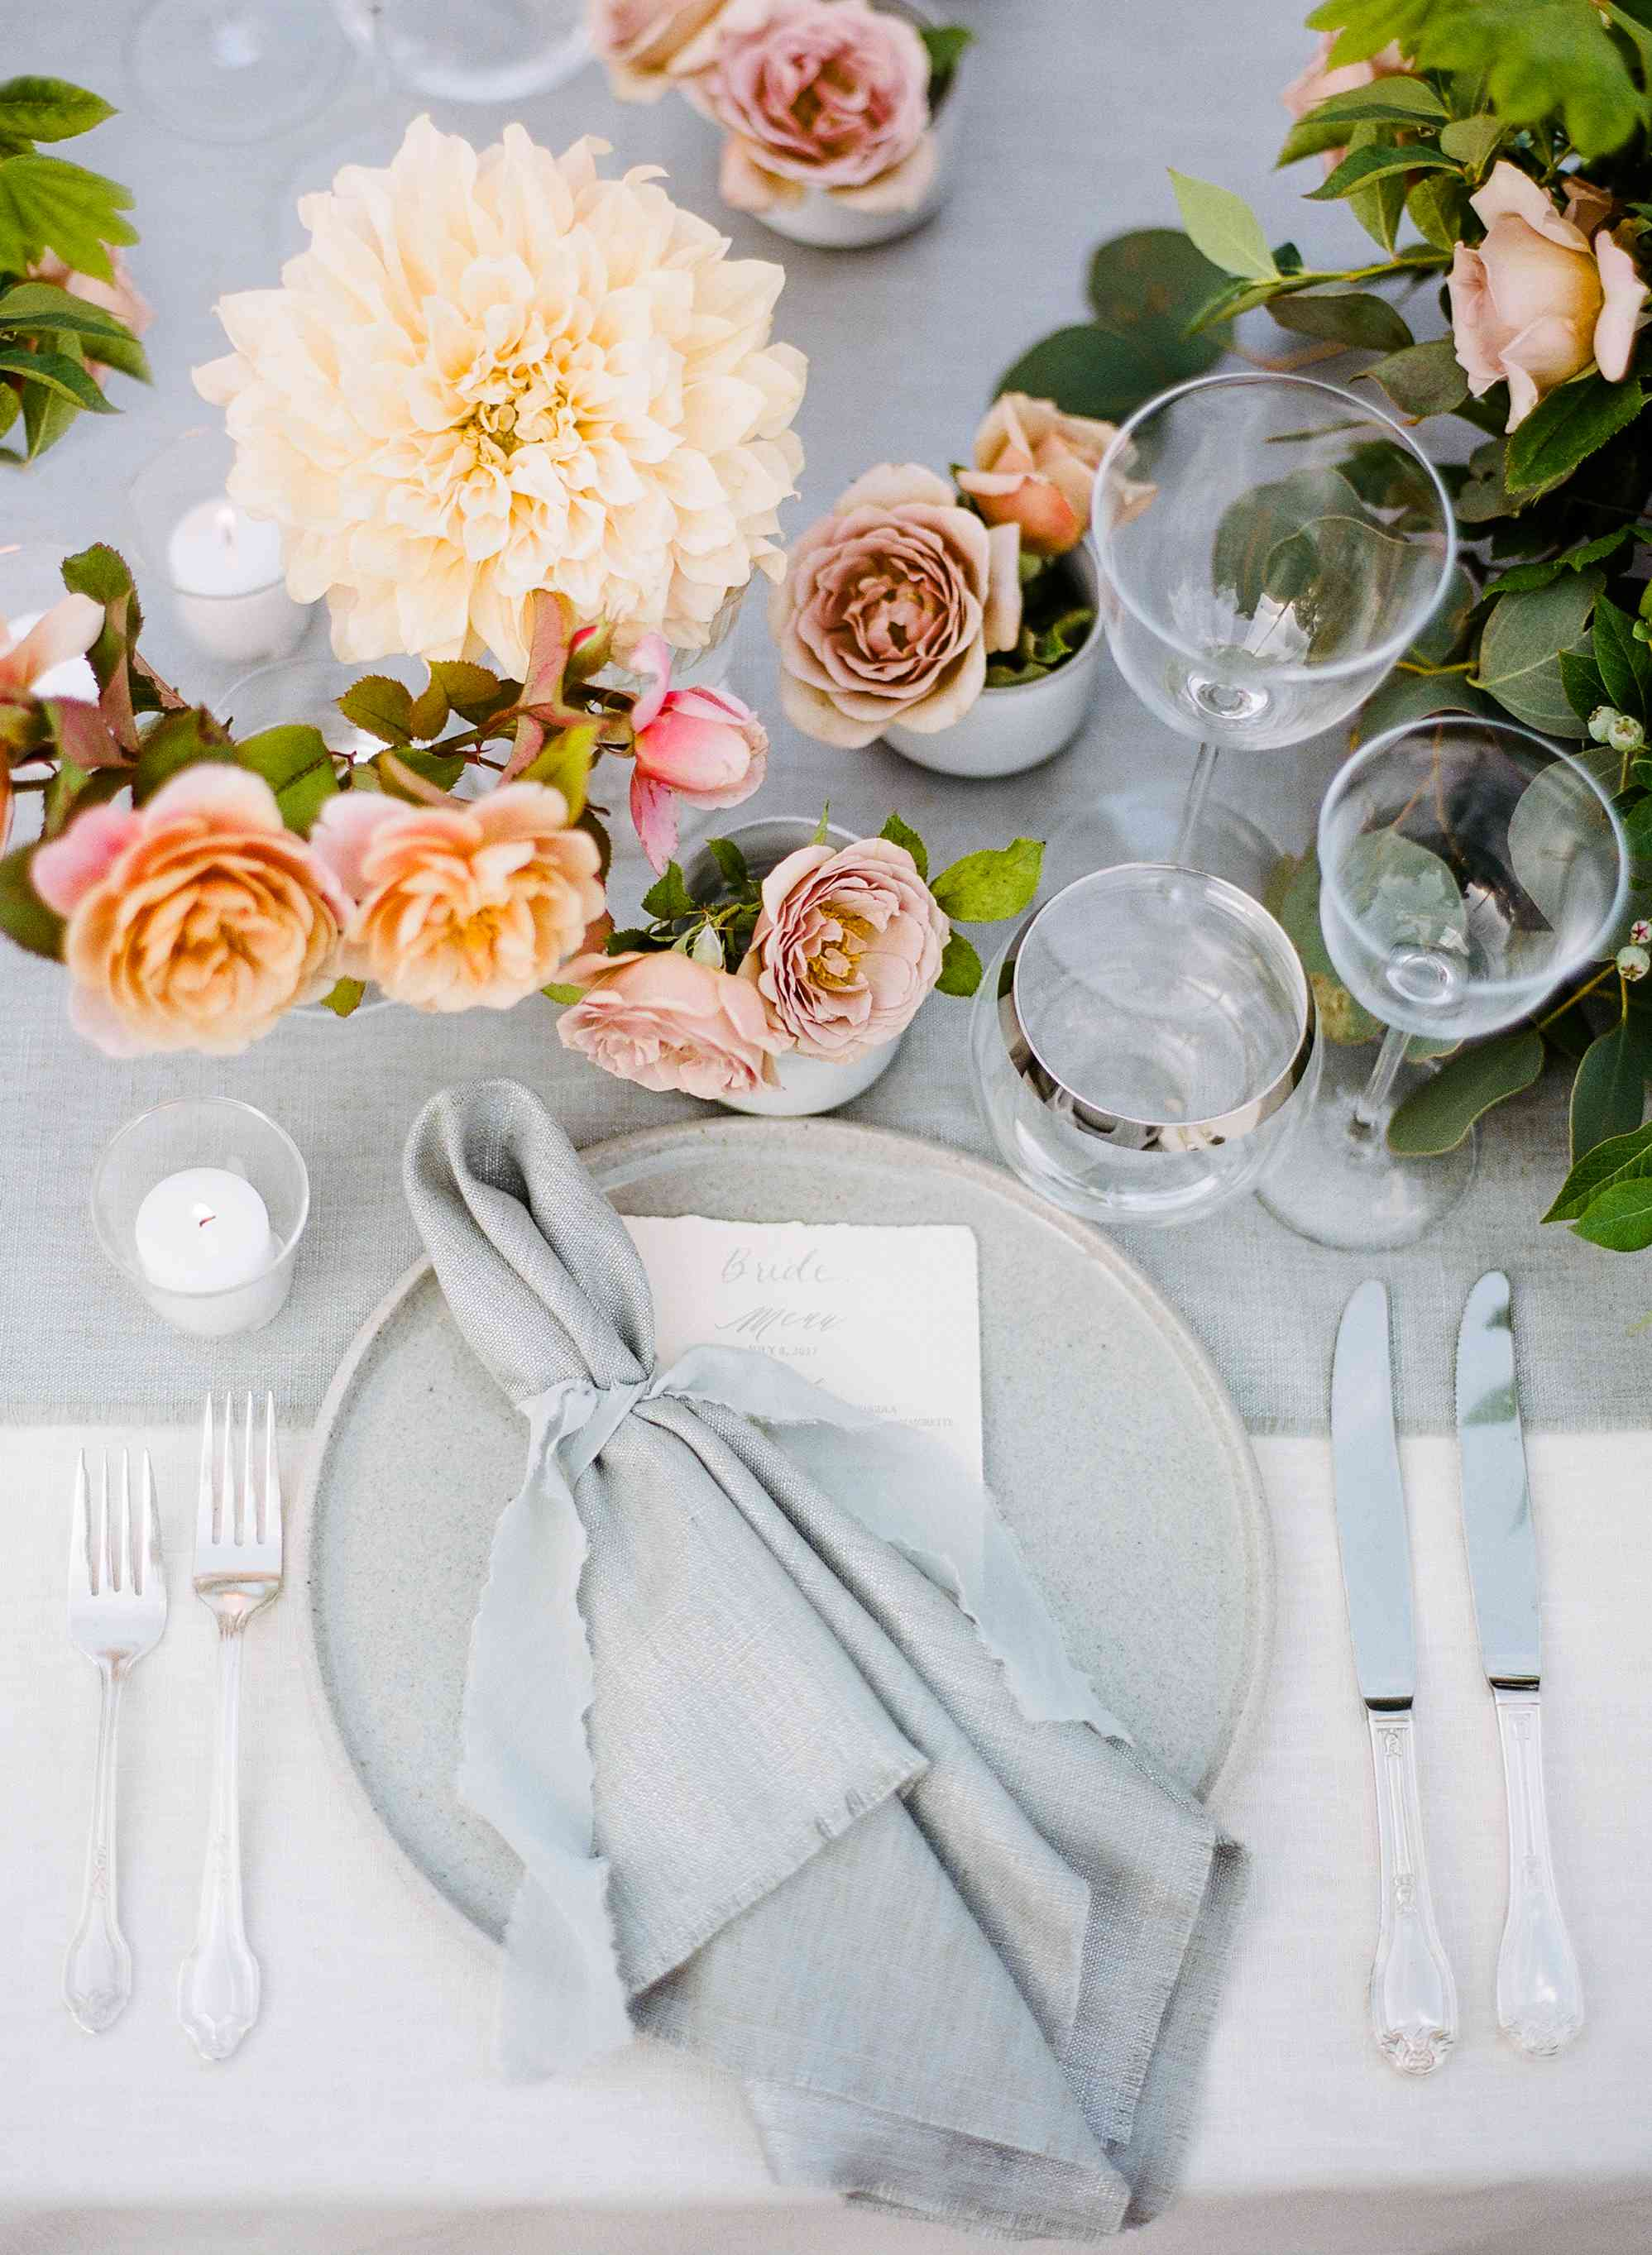 Table setting with gray napkin and plate with pastel flower decor